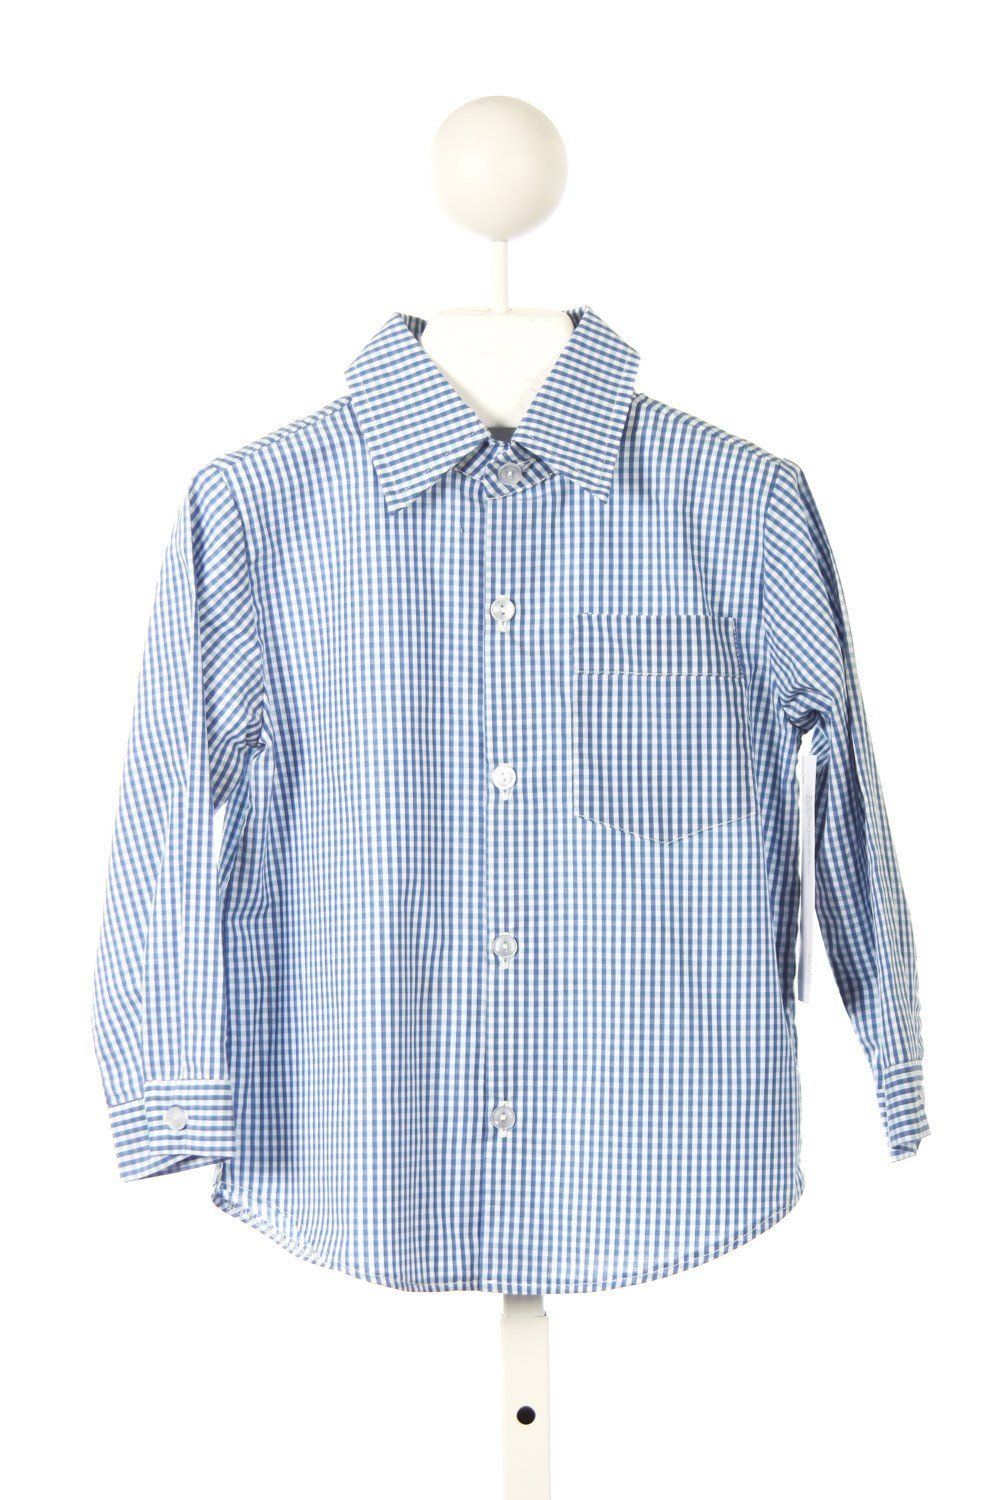 RED BEANS FRANK LONG SLEEVE SHIRT IN ROYAL/GREEN PLAID